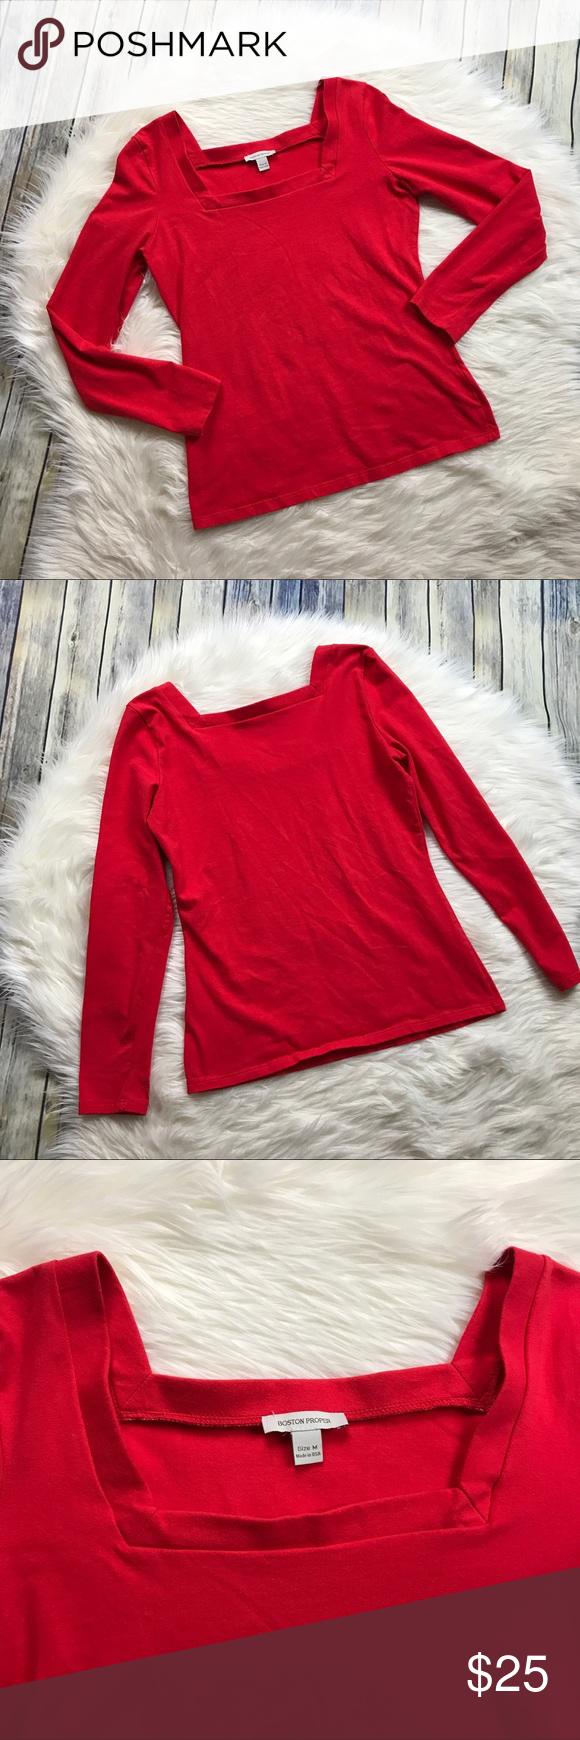 """Boston Proper Red Square Neckline Long Sleeve Tee Super cute red long sleeve tee with a square neckline. Stretchy fit. Gently used with no flaws! 92% cotton, 8% spandex.   Measurements laying flat (without stretching): --Armpit to armpit:18""""  --Length, shoulder to hem:24.5"""" Boston Proper Tops"""